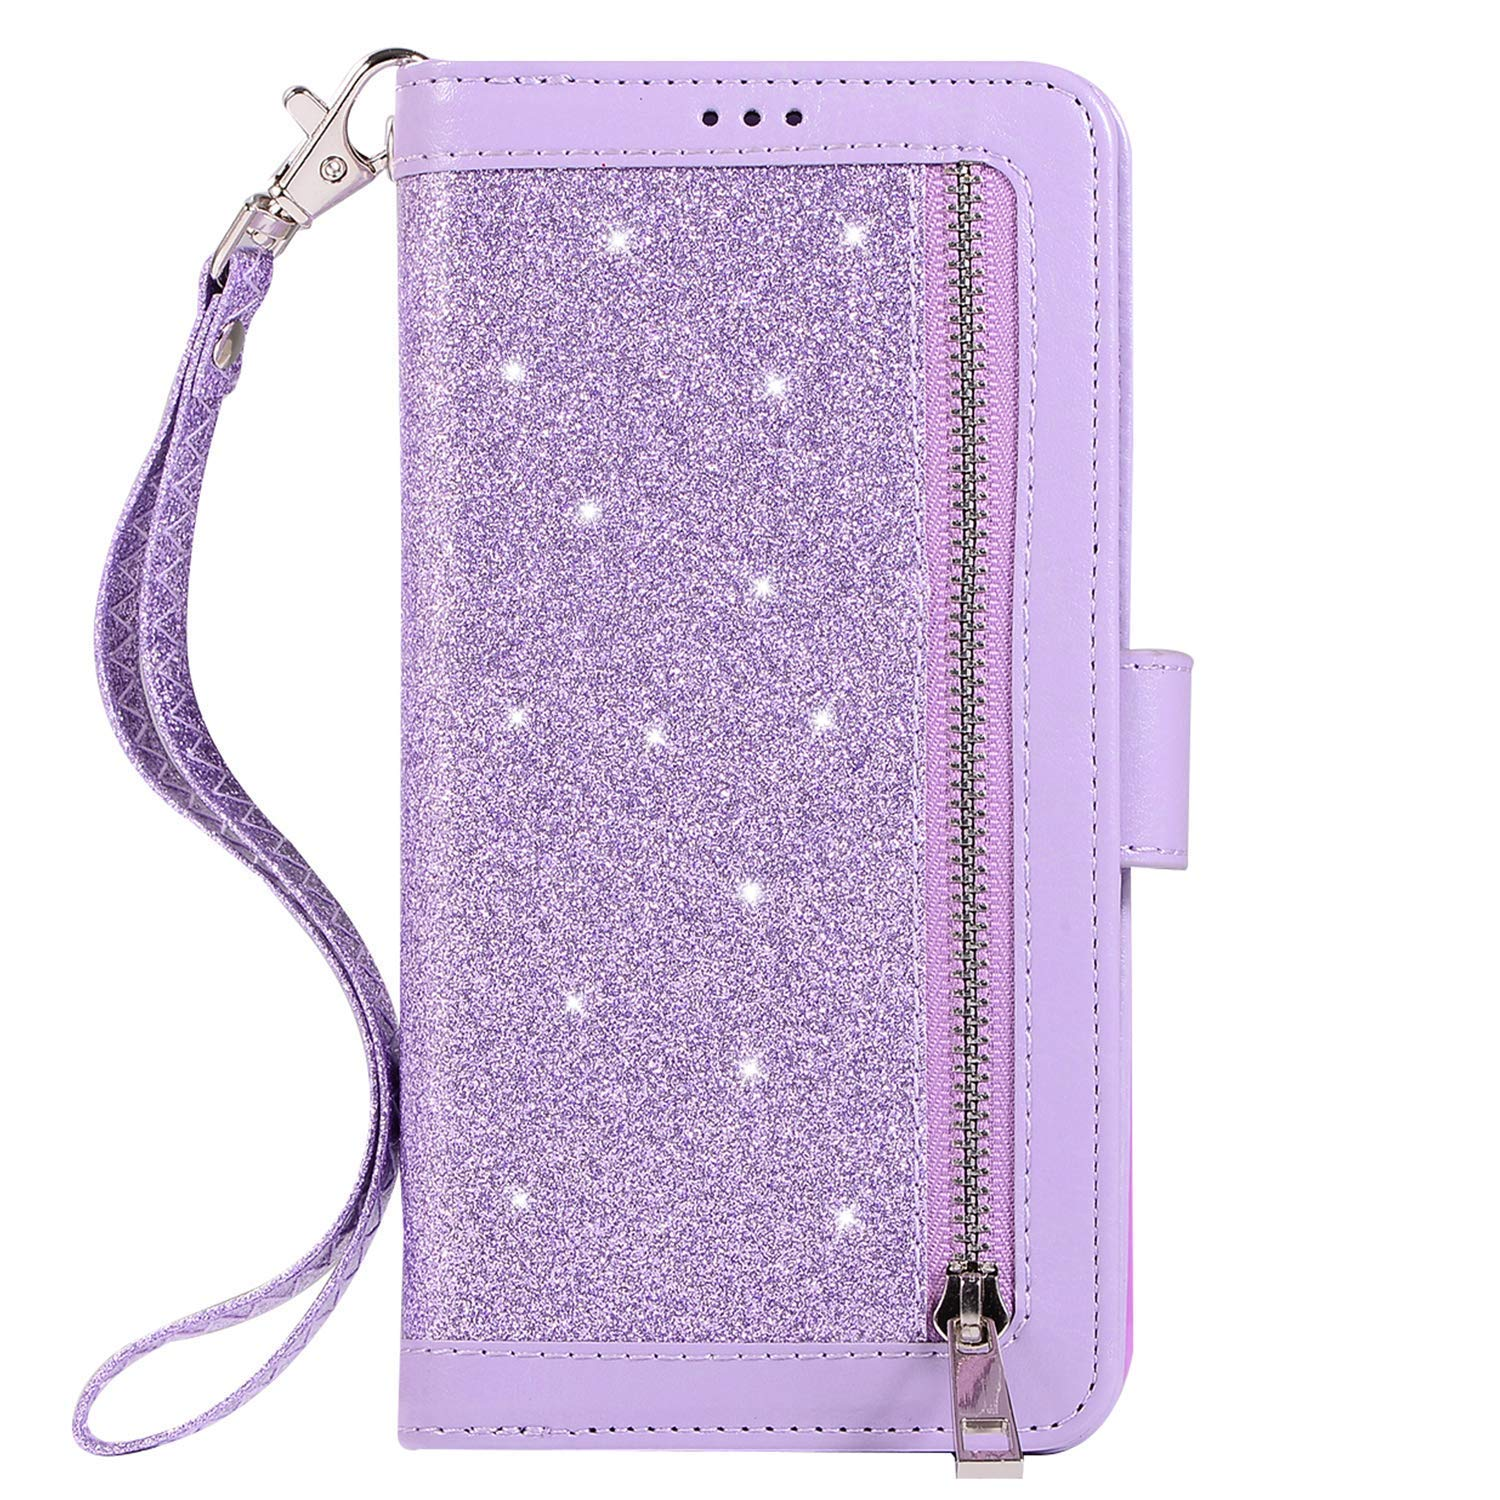 Uposao Compatible with Samsung Galaxy S8 Case Bling Glitter Sparkle Luxury Vintage Zipper Multifunctional Leather Flip Case Wallet Cover with Stand Magnetic 9 Card Holder Slots,Silver